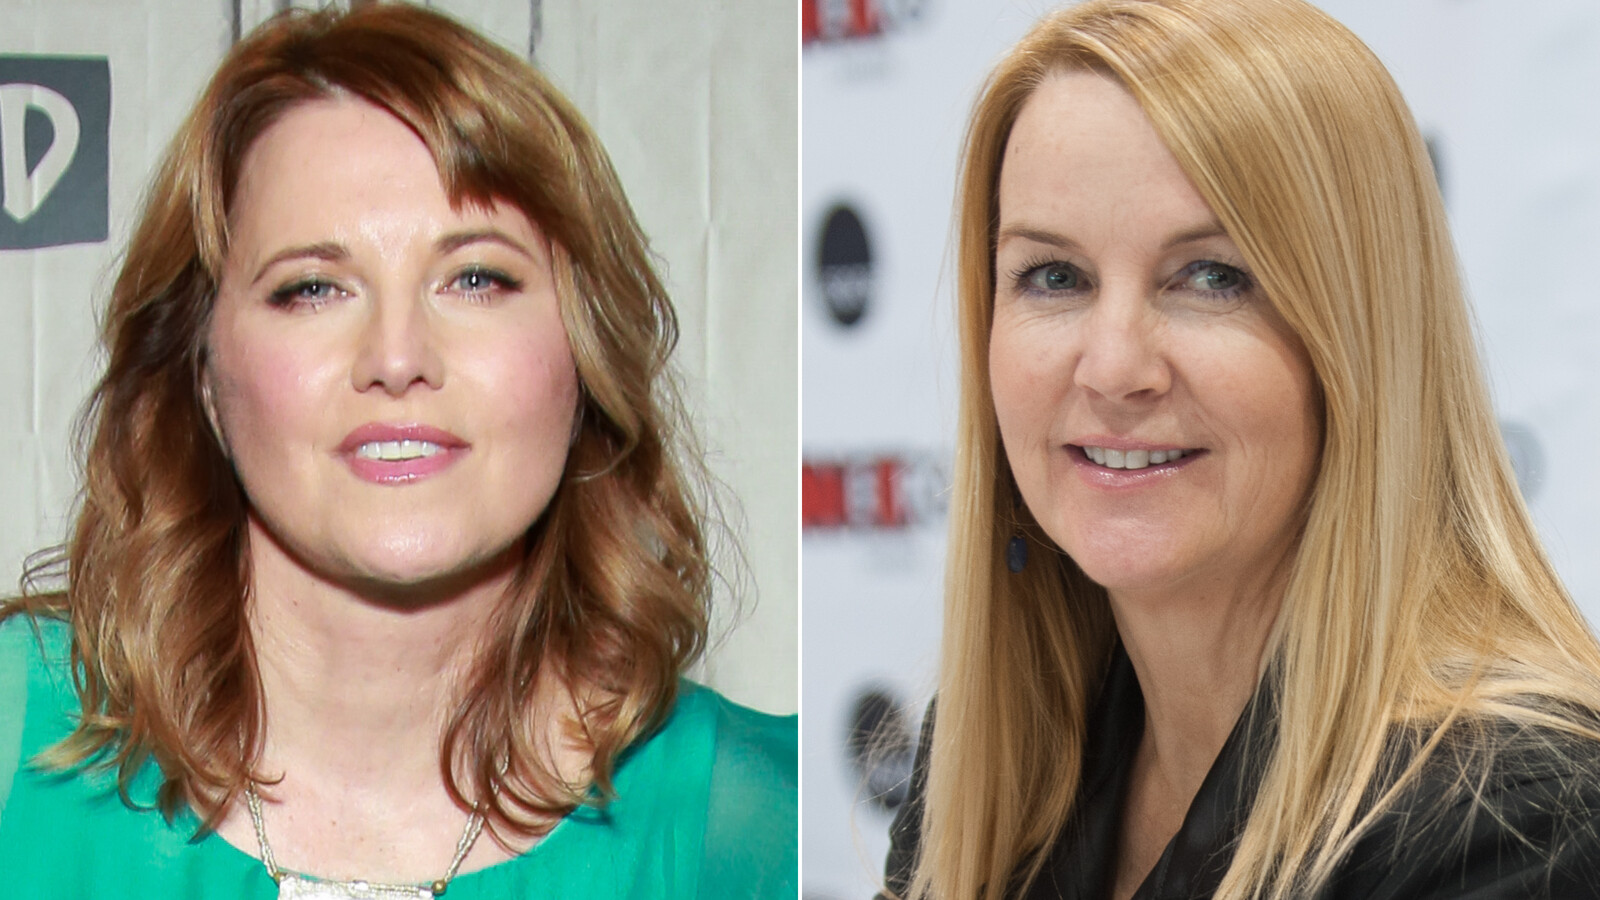 Lucy Lawless reunites with 'Xena' costar